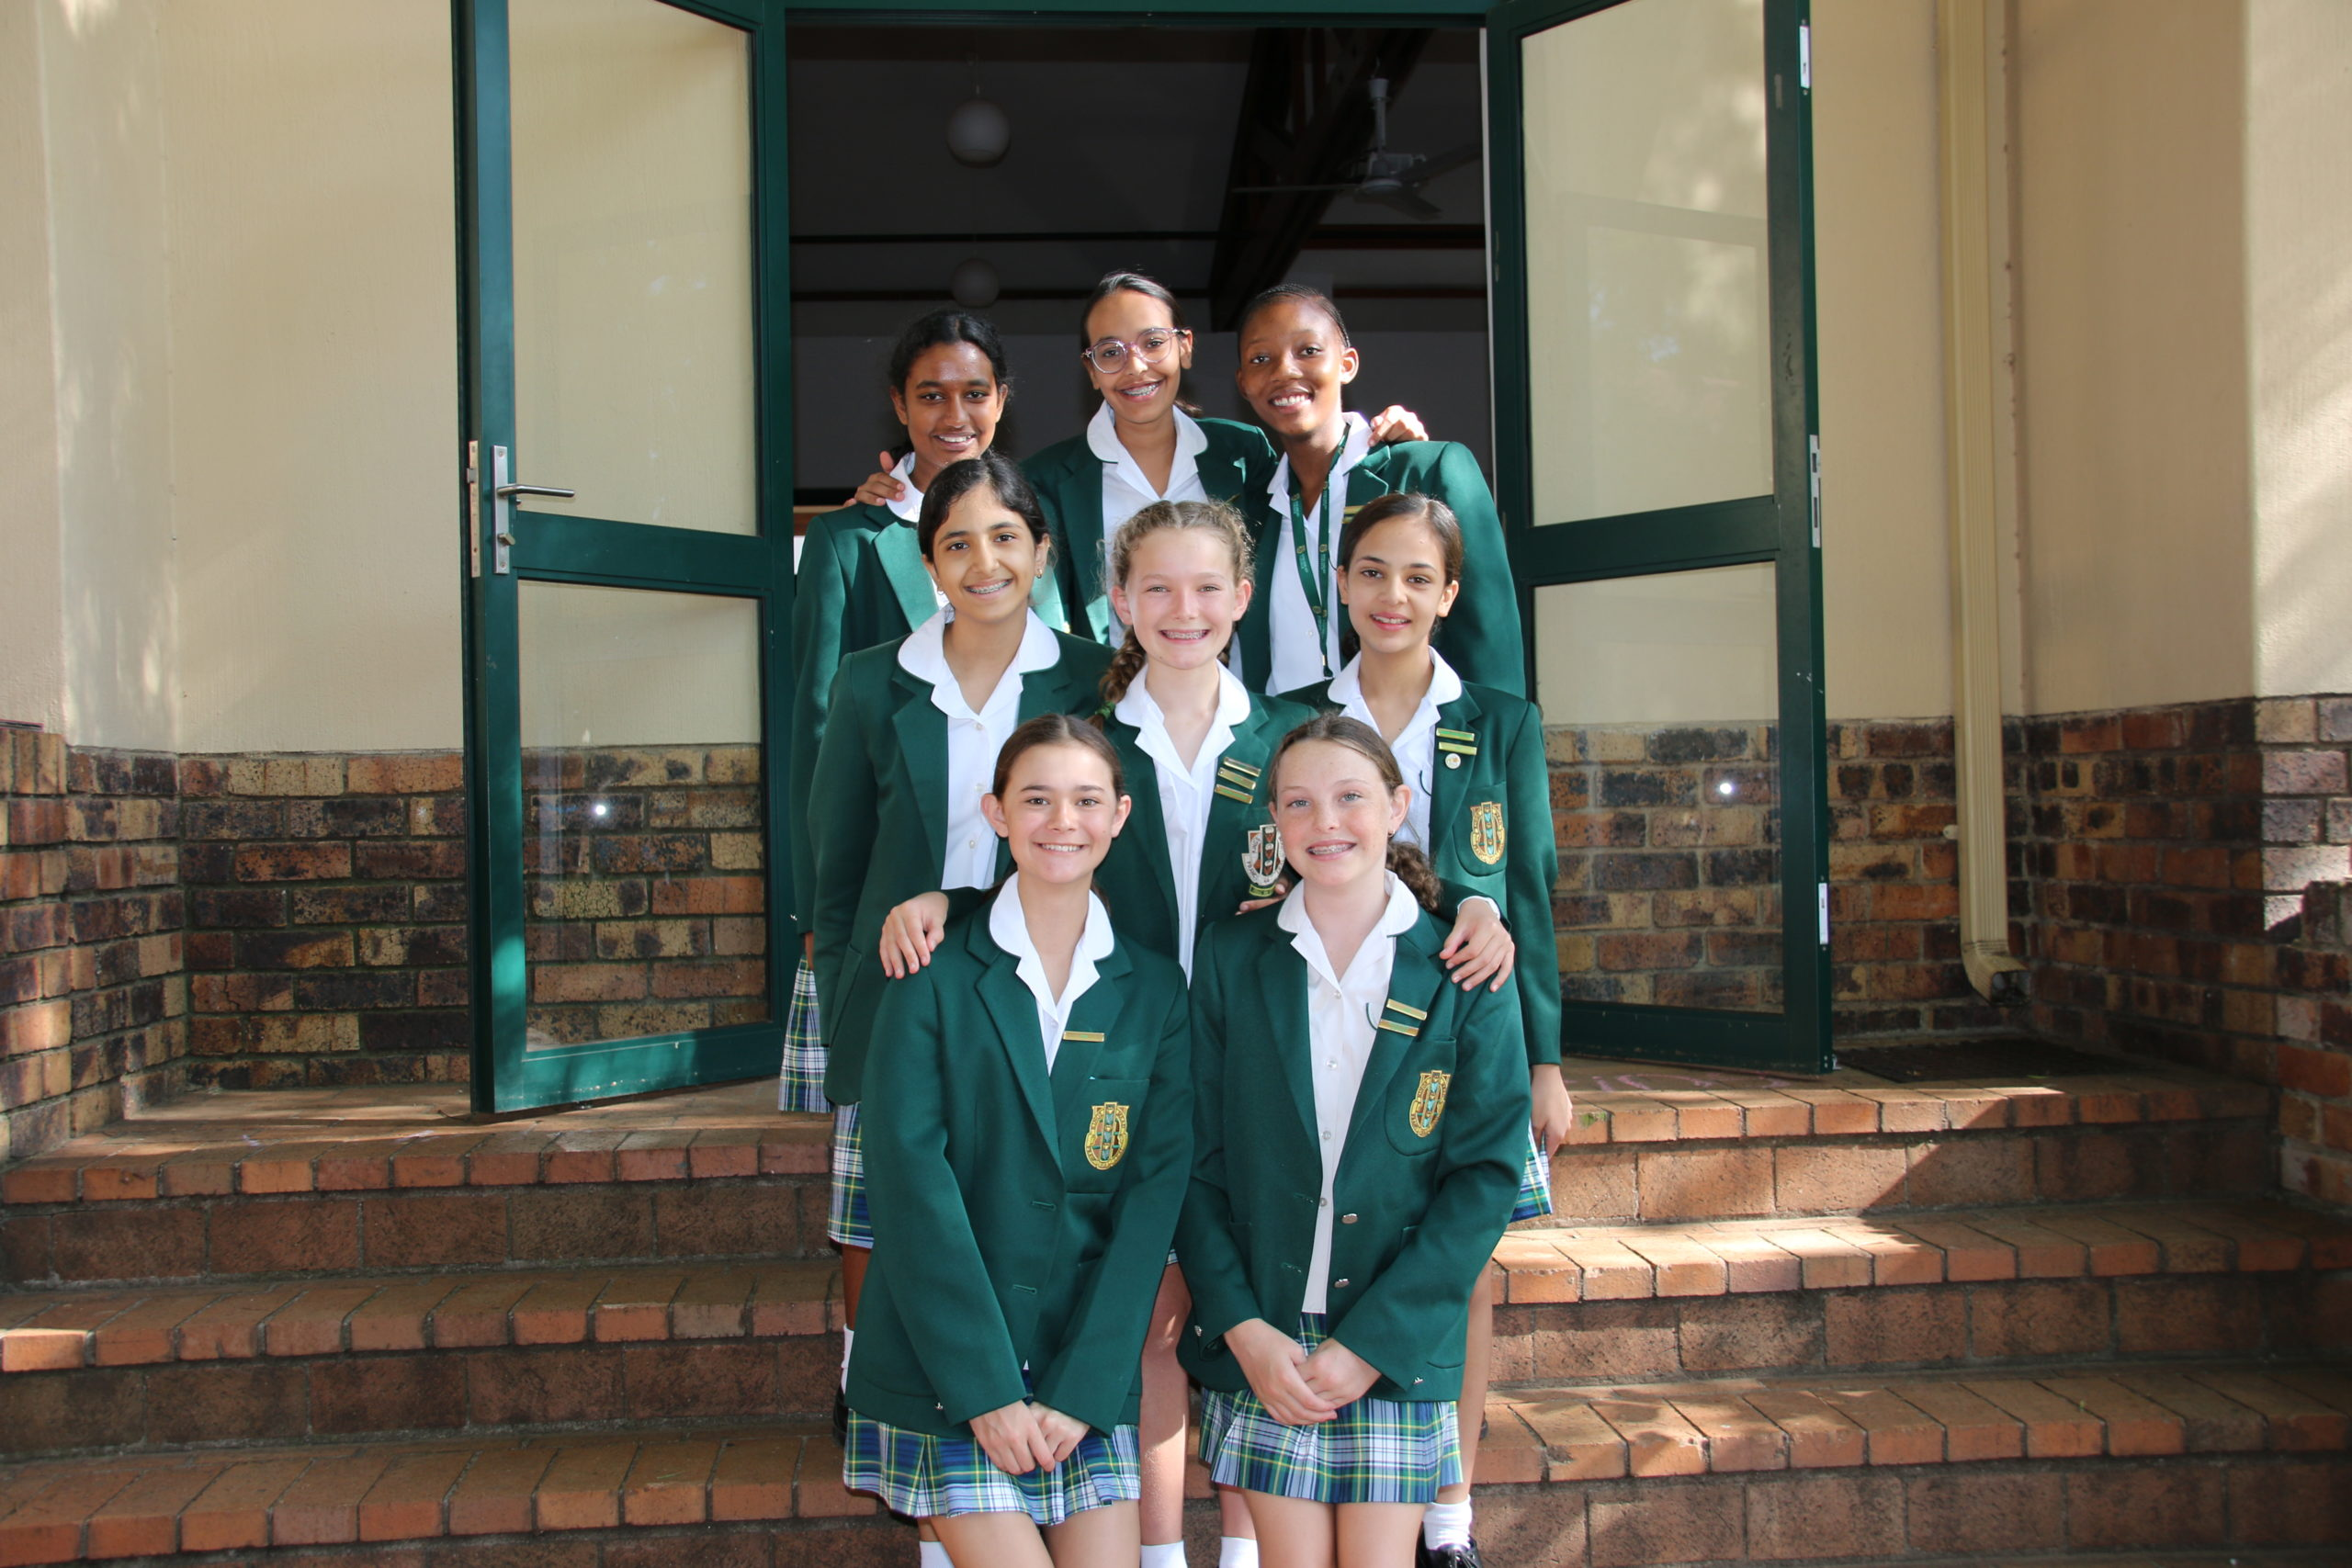 TRANSFORMATION DIVERSITY INCLUSION COMMITTEE scaled Kingsmead College